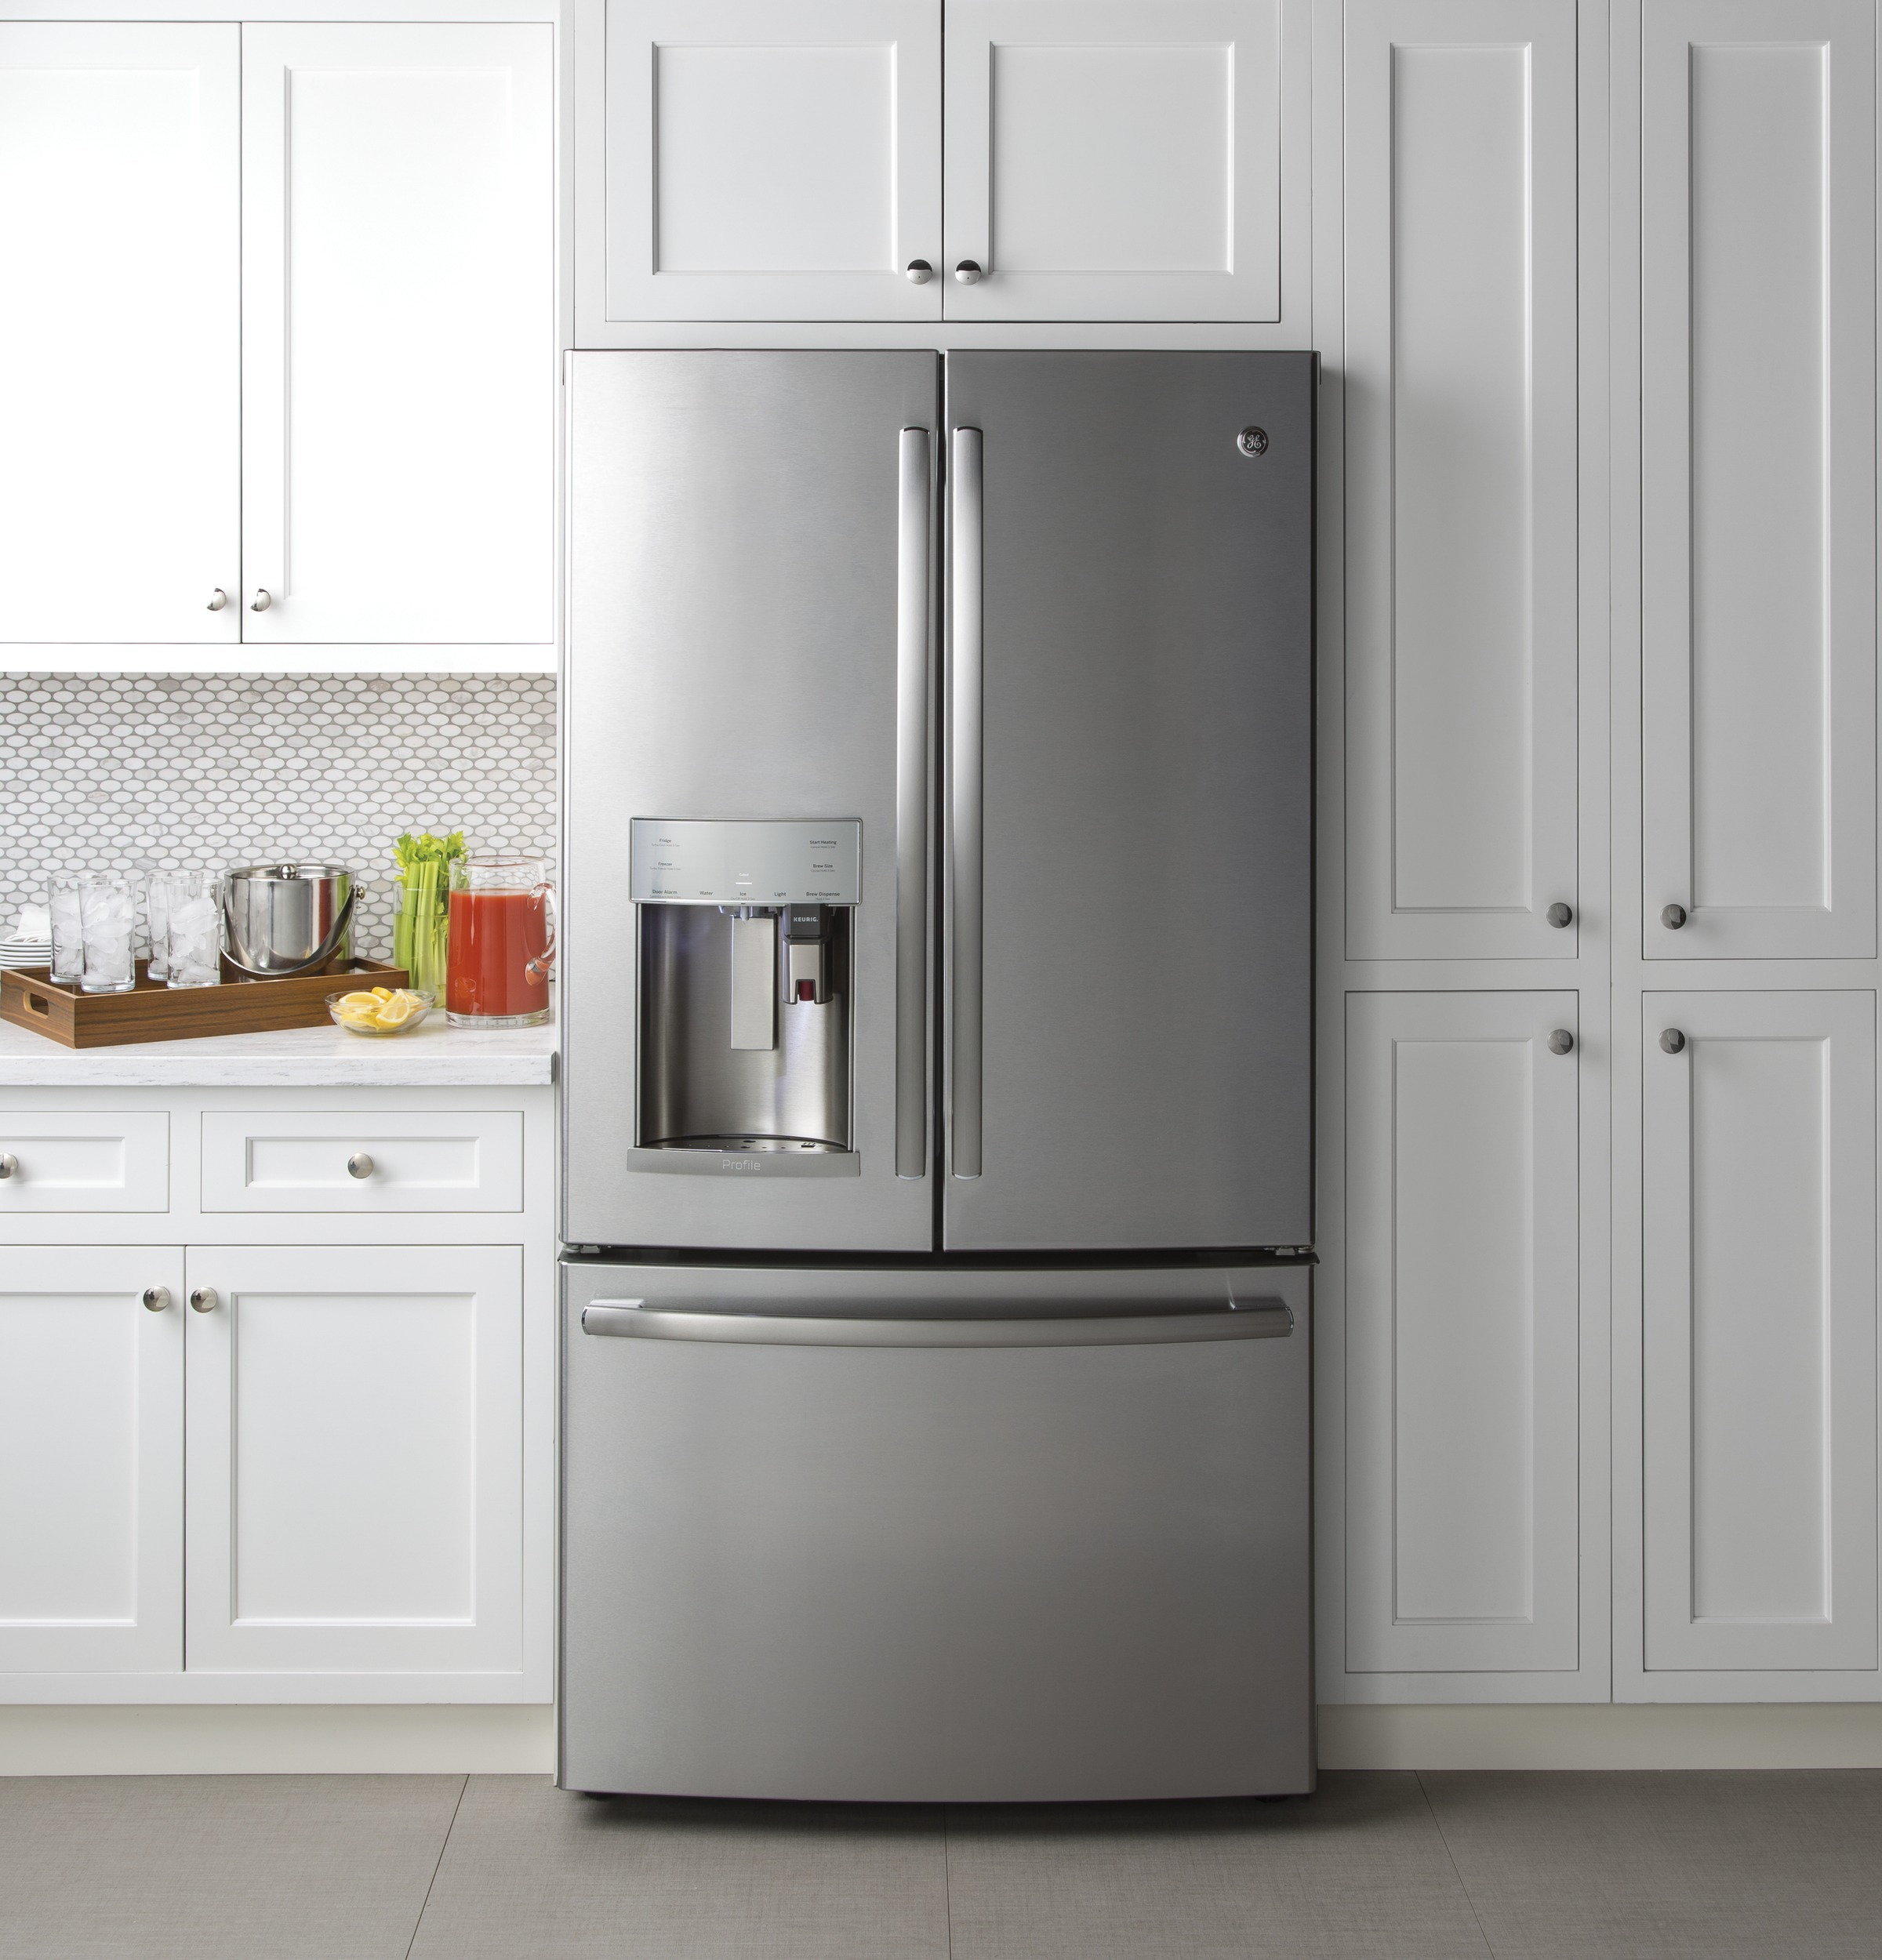 Tax Free Refrigerators Are Coming